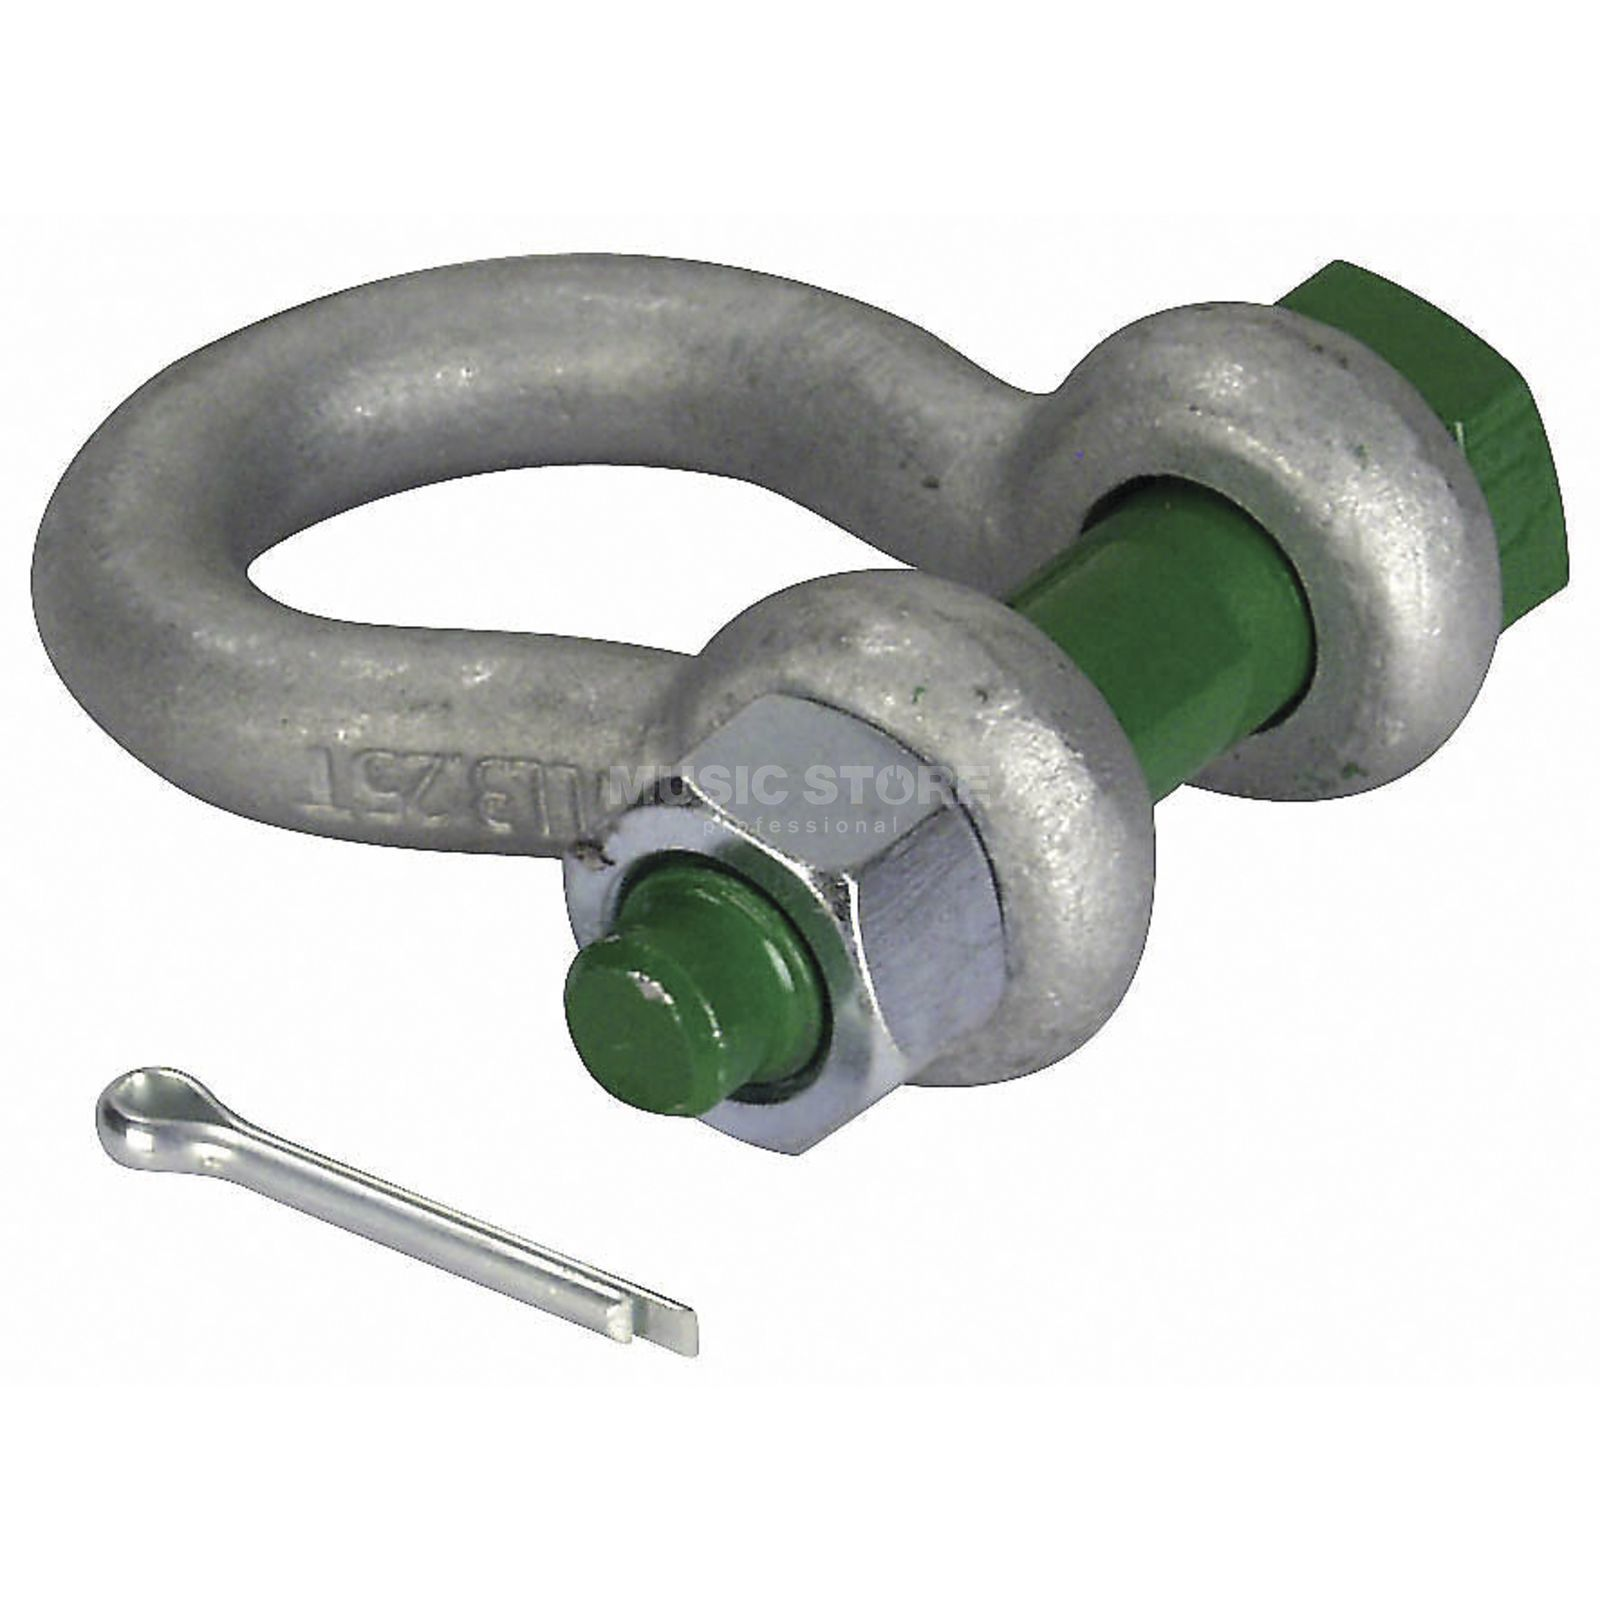 lightmaXX Safety Shackle incl. Nut & Pin, Max 3.25 t Product Image